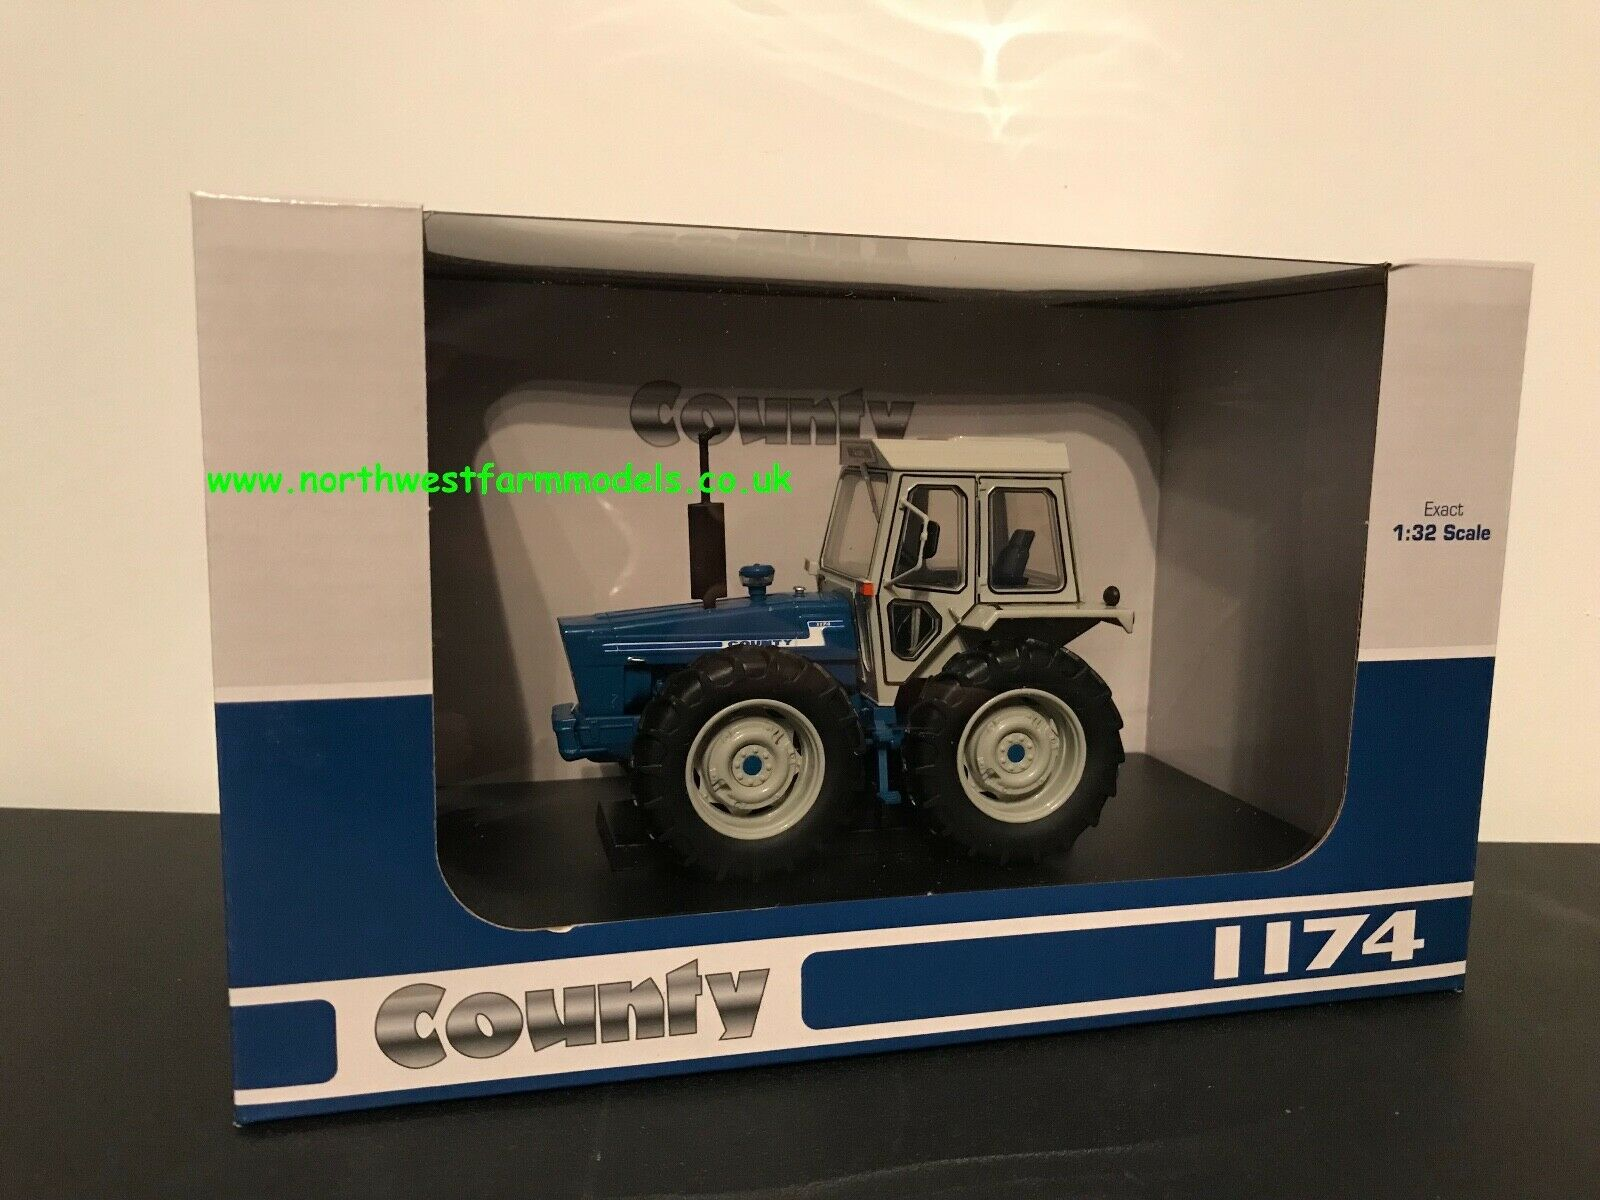 UNIVERSAL HOBBIES 5271 1 32 32 32 SCALE COUNTY 1174 OUT NOW 940358